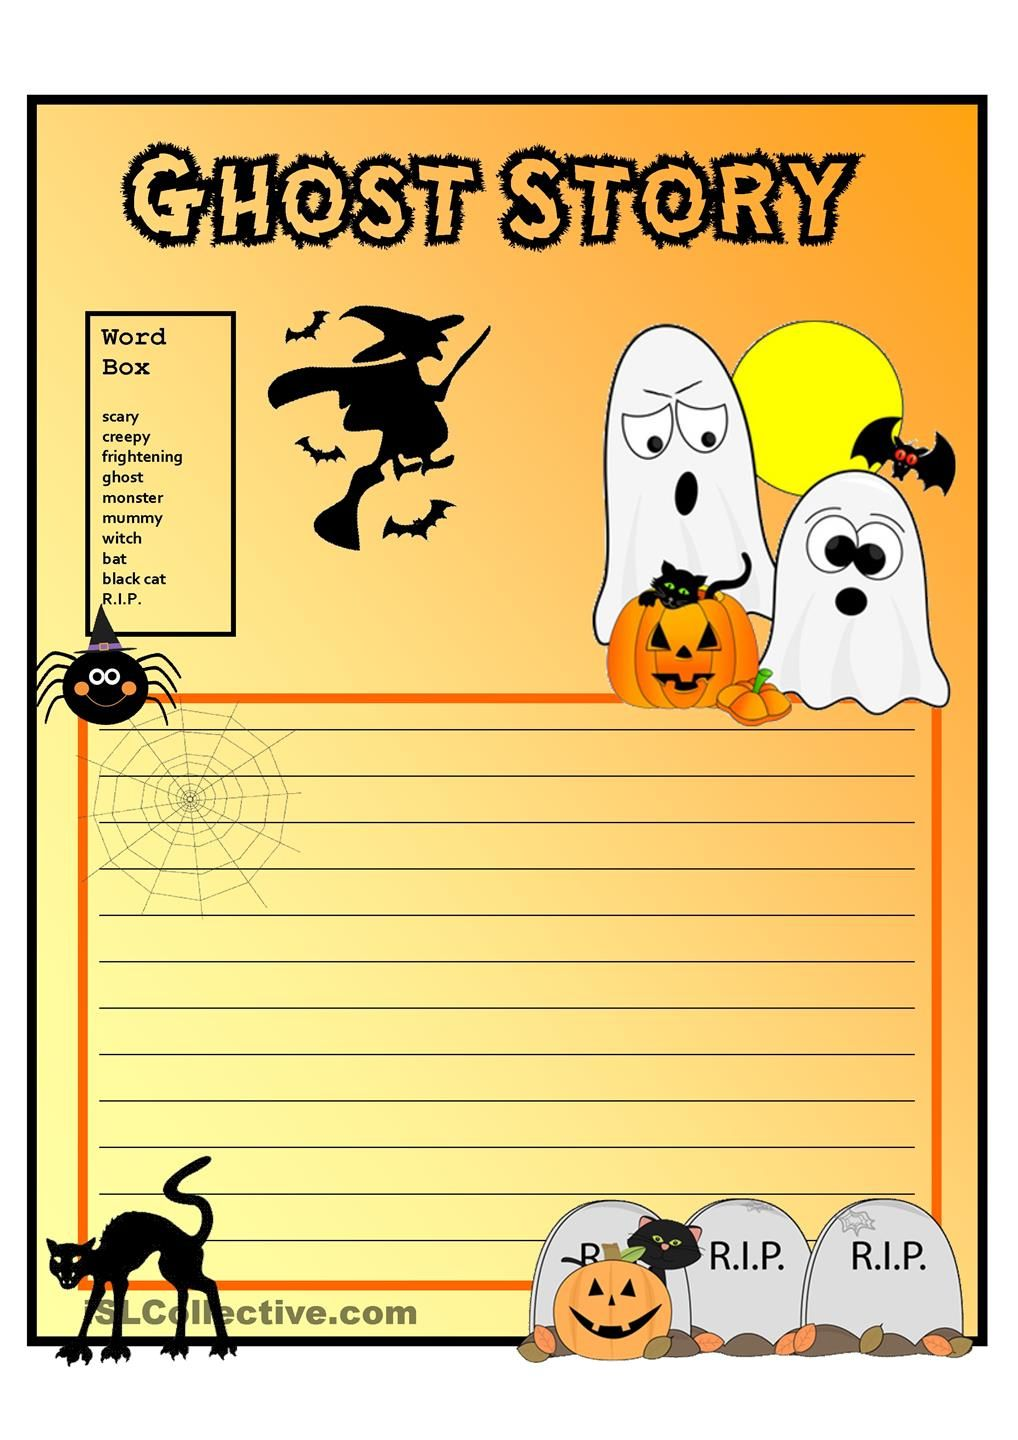 creative writing ghost story form vocabulary grade  write a scary halloween story vocabulary suggestions in word box prepare the students by reading ghosts stories to them or by talking about what a ghost